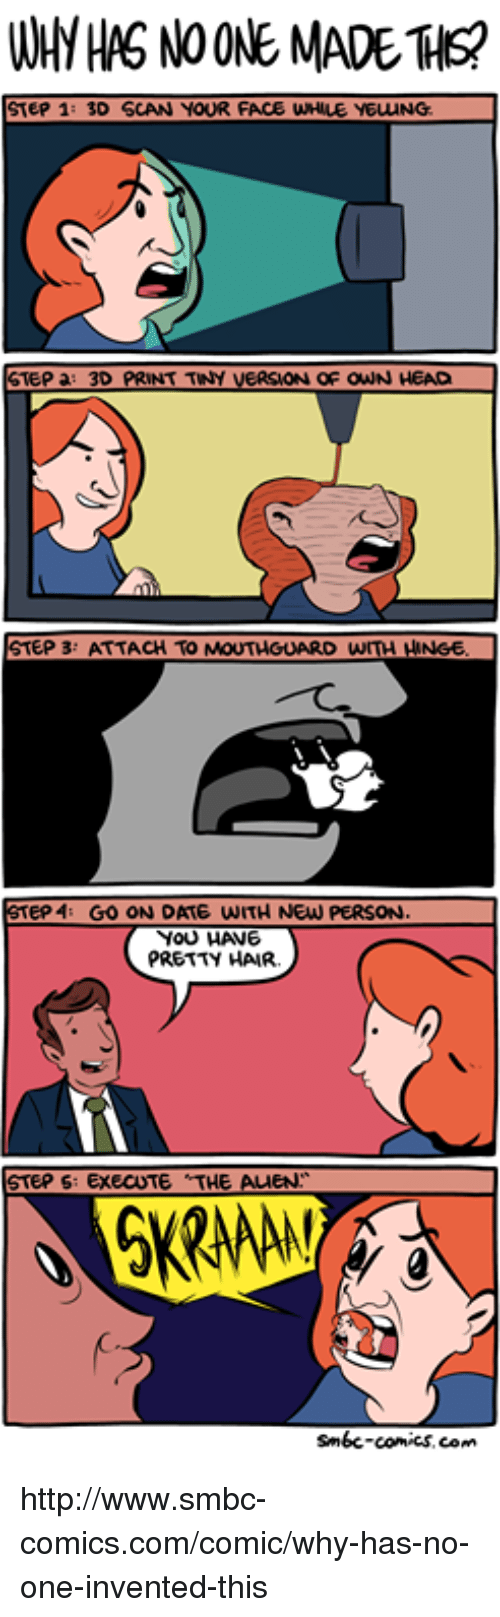 Smbc Comic: WHH HAS NOONE MADE THs?  STEP 1: 3D SCAN YOUR FACE WHALE YEUUNG  STEP a: 3D PRINT TINY VERSAON OF owN HEAD  STEP 3: ATTACH TO MOUTHGUARD WITH HANGE  STEP 4 GO ON DATE WITH NEW PERSON.  YOU HANE  PRETTY HAIR.  STEPS  EXECUTE THE AMEN  smbc-comics.com http://www.smbc-comics.com/comic/why-has-no-one-invented-this